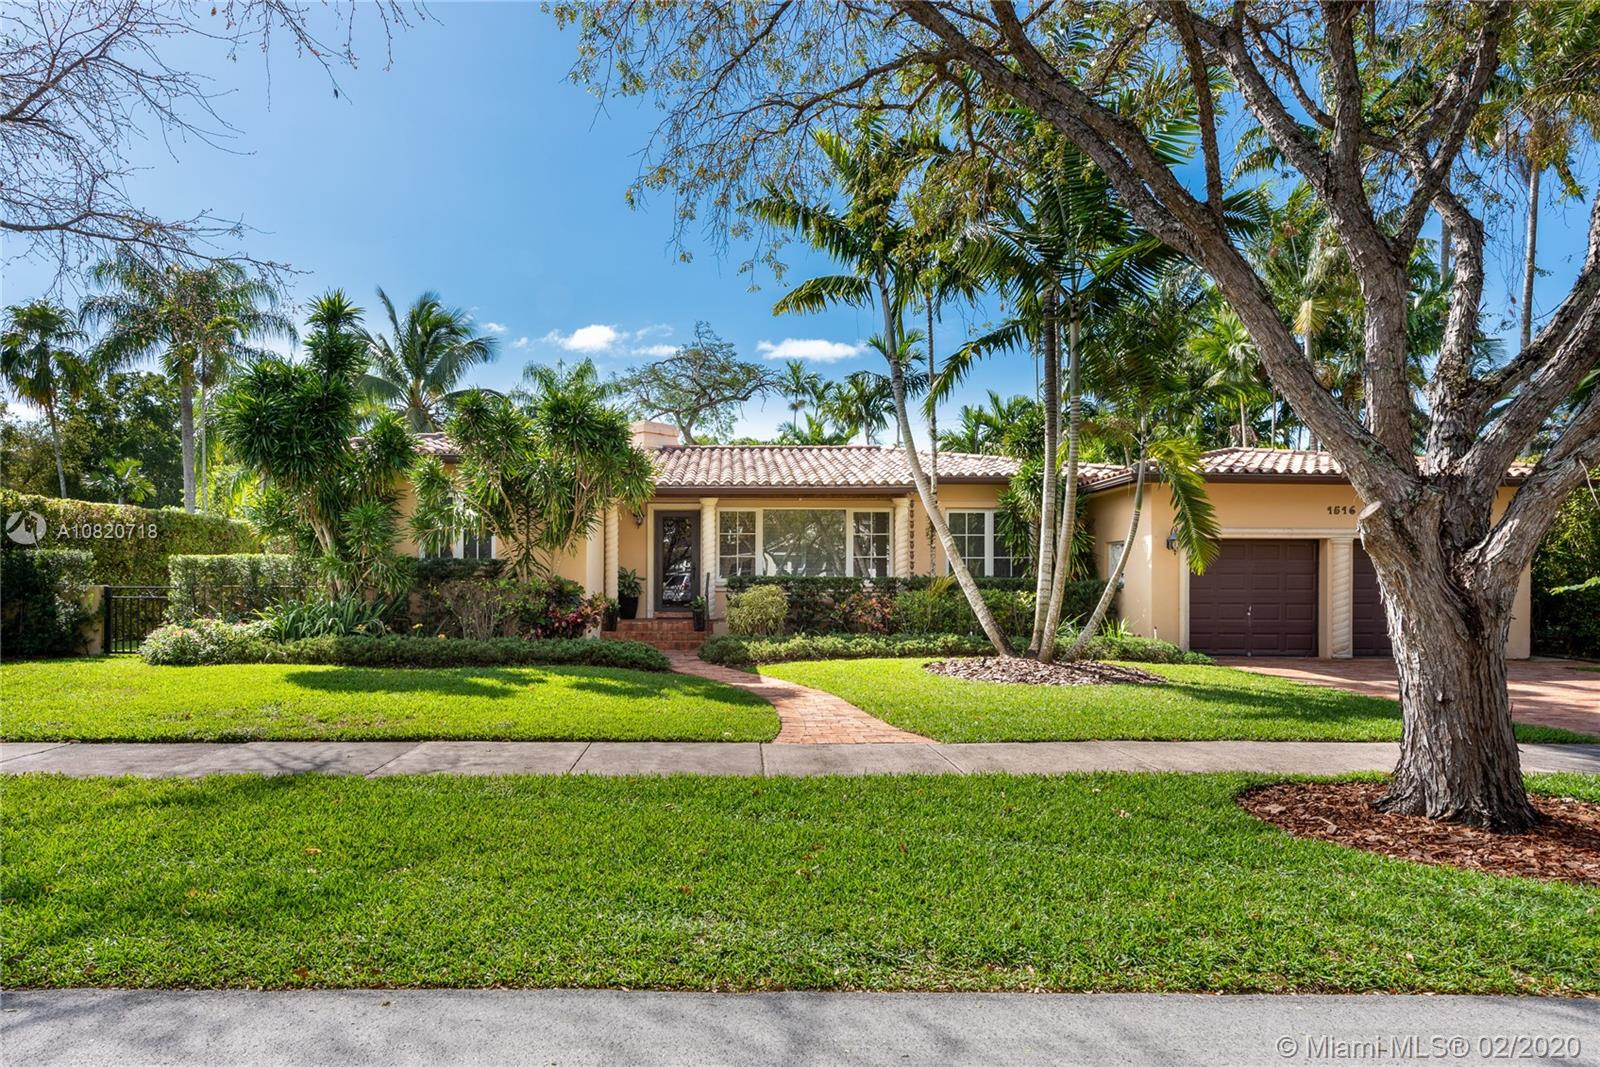 1516  Trevino Ave  For Sale A10820718, FL